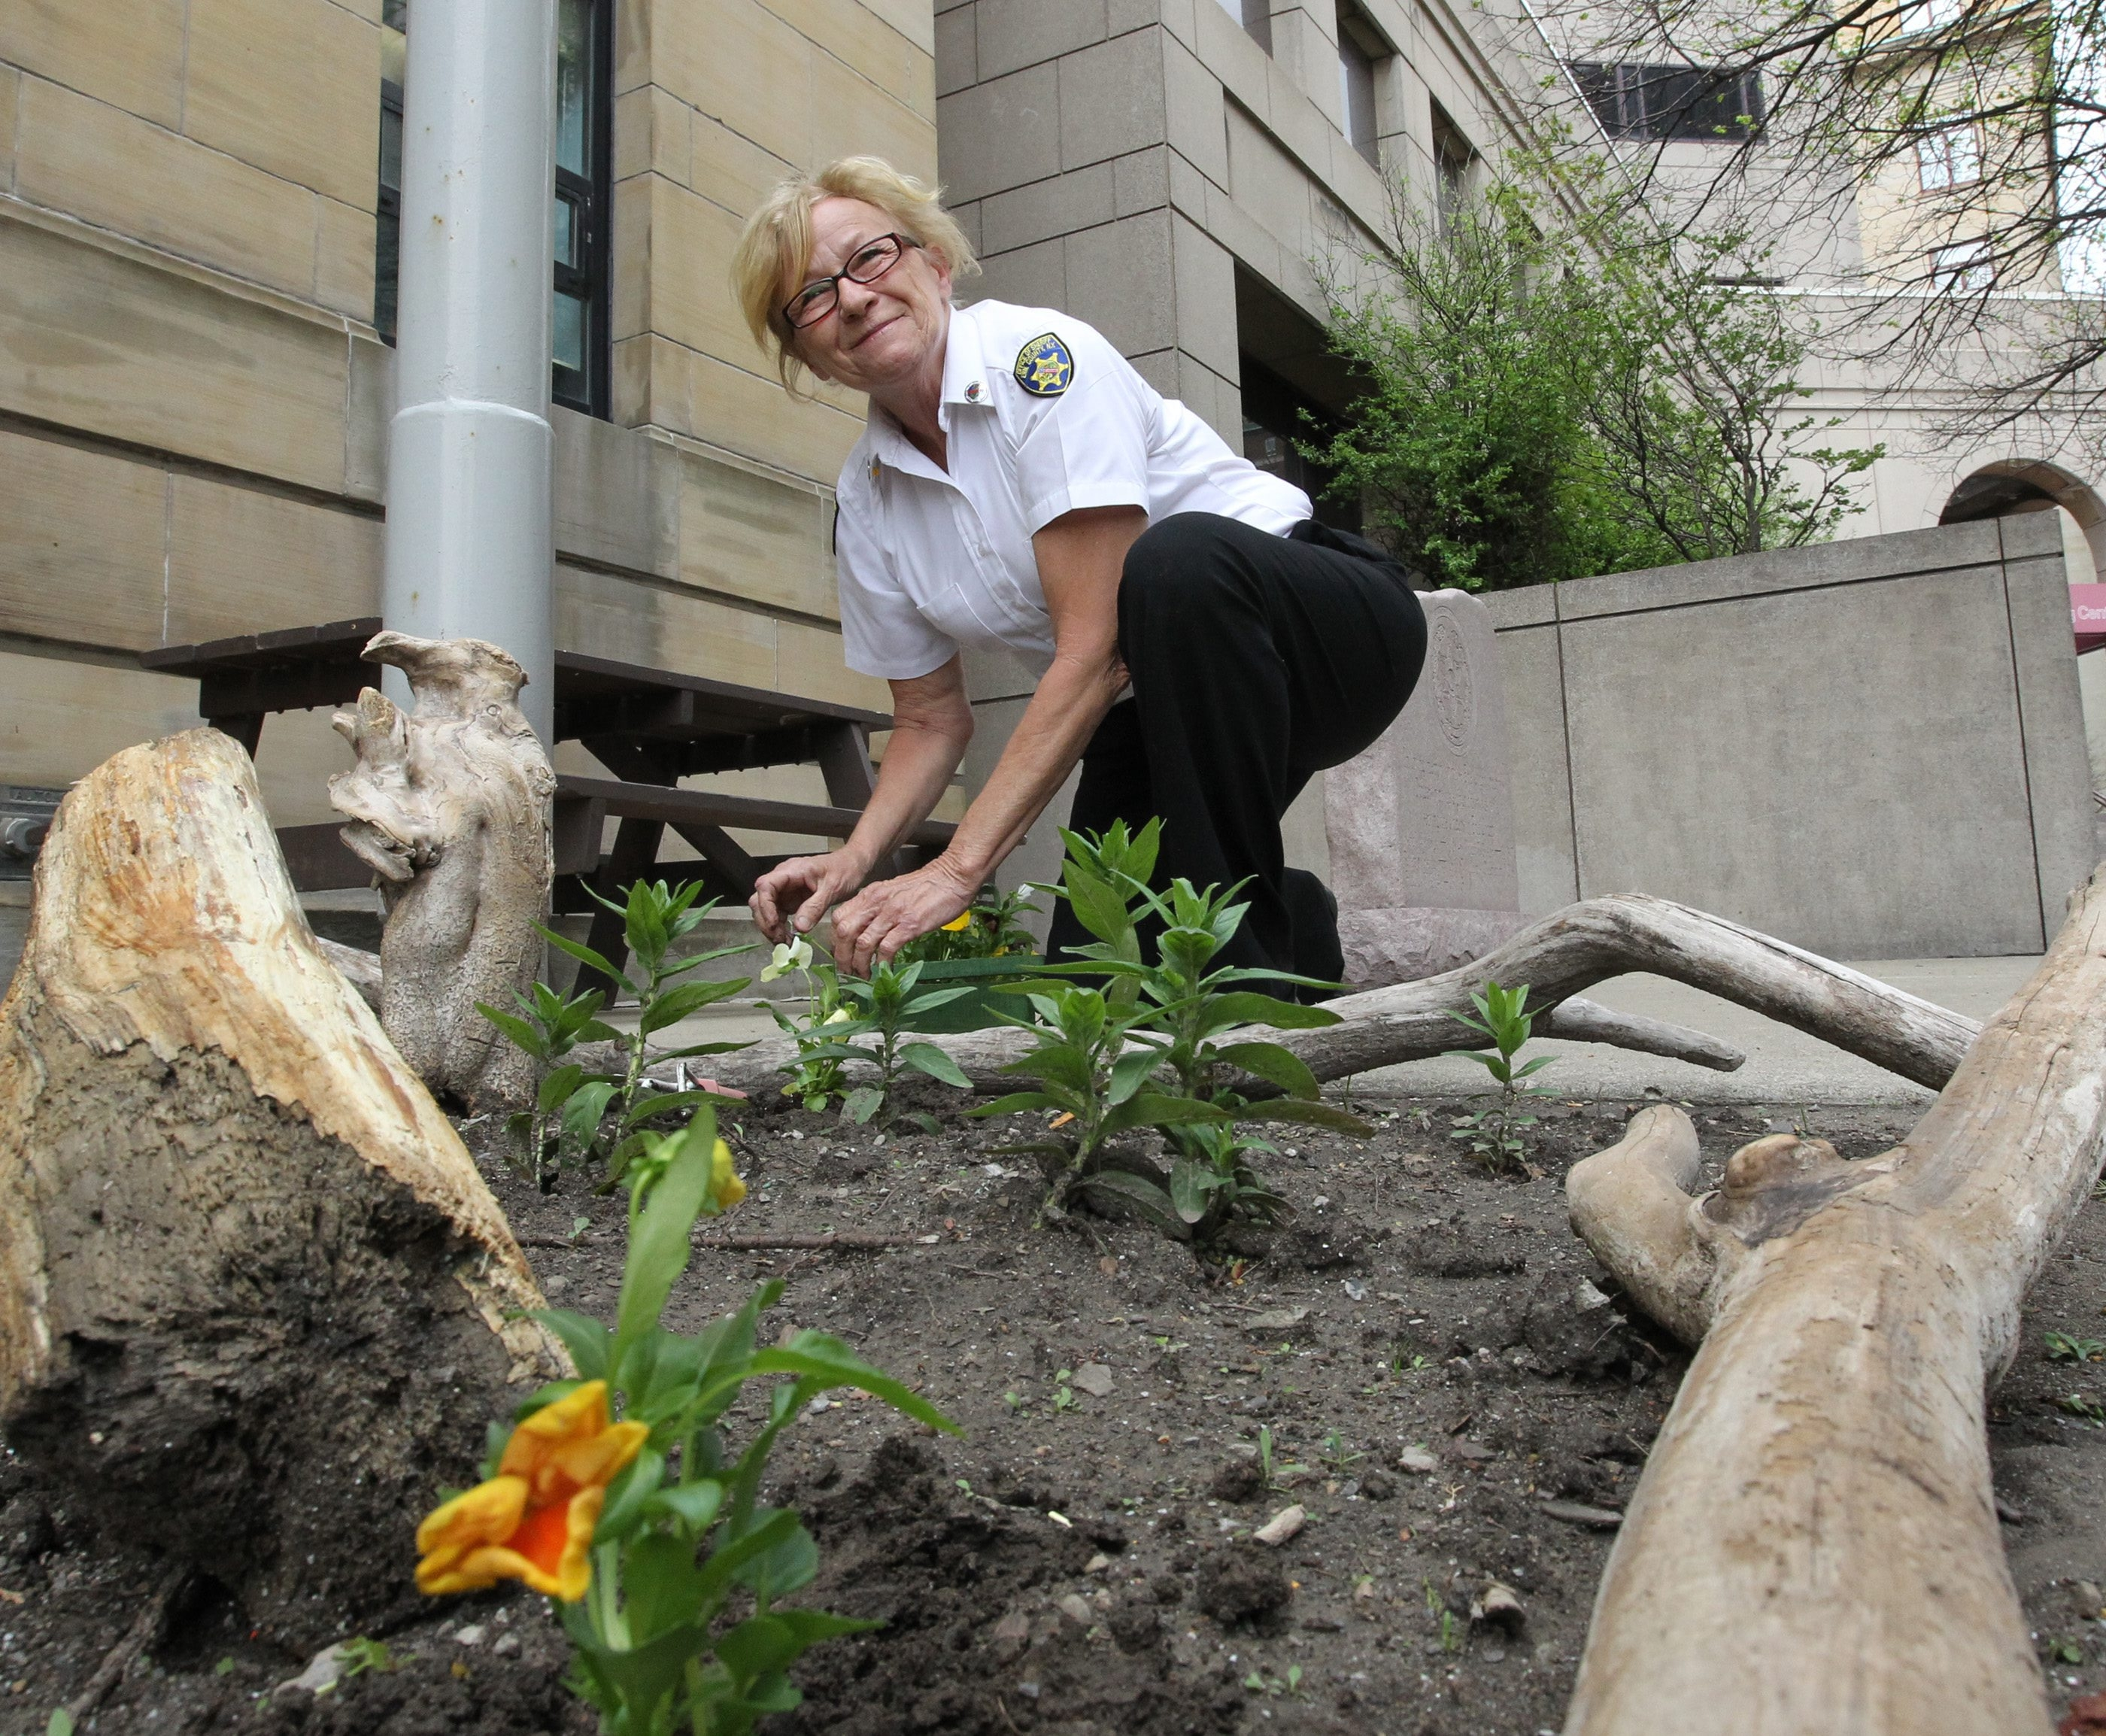 Erie County Sheriff's Office receptionist Susie Wilke Zagorski is beautifying what once were patches of dirt in front of sheriff's administrative offices on Delaware Avenue  with flowers.